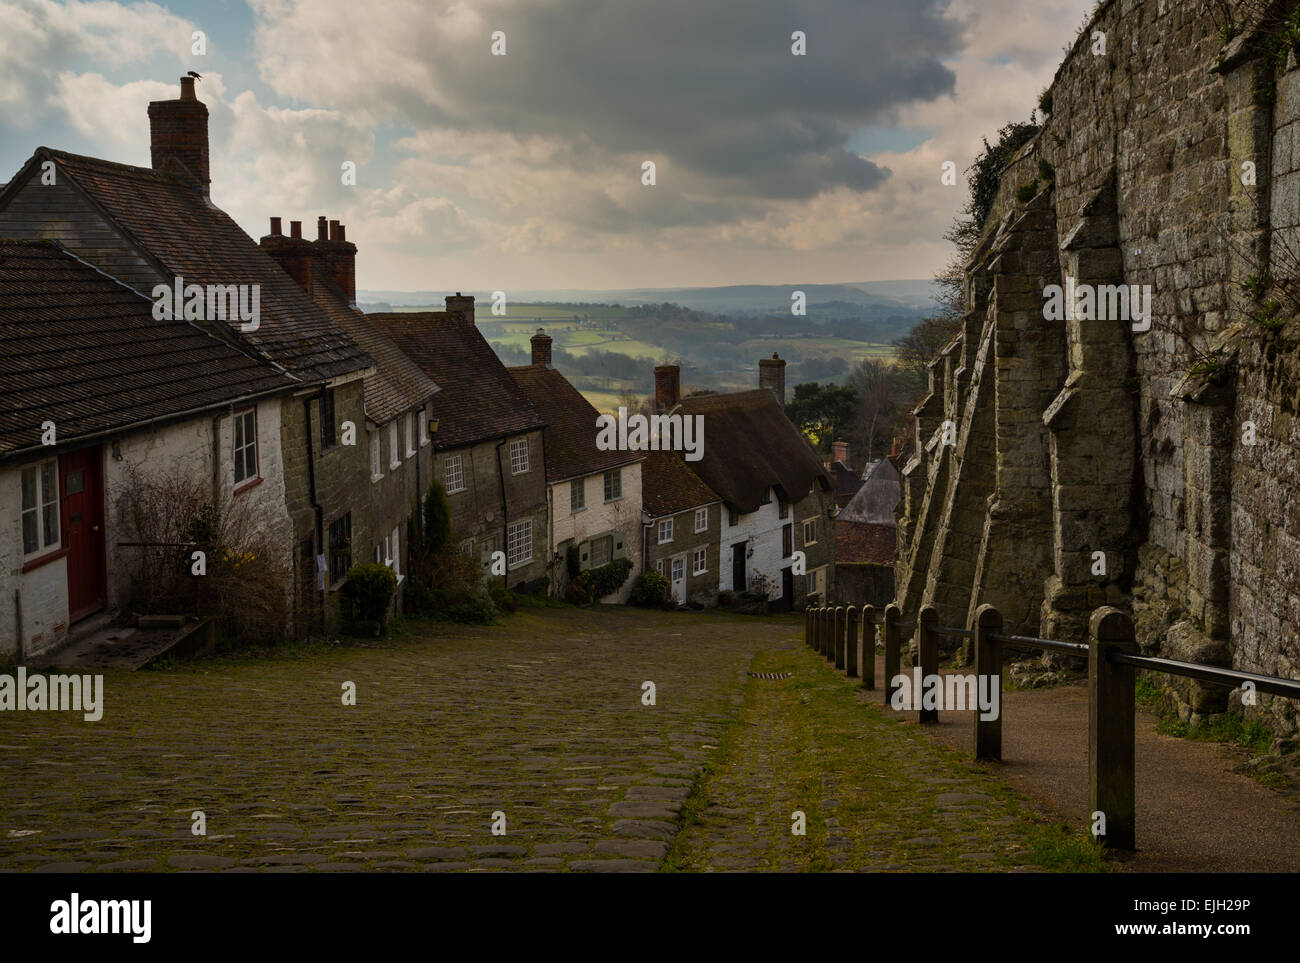 The famous gold hill in shaftesbury dorset - Stock Image